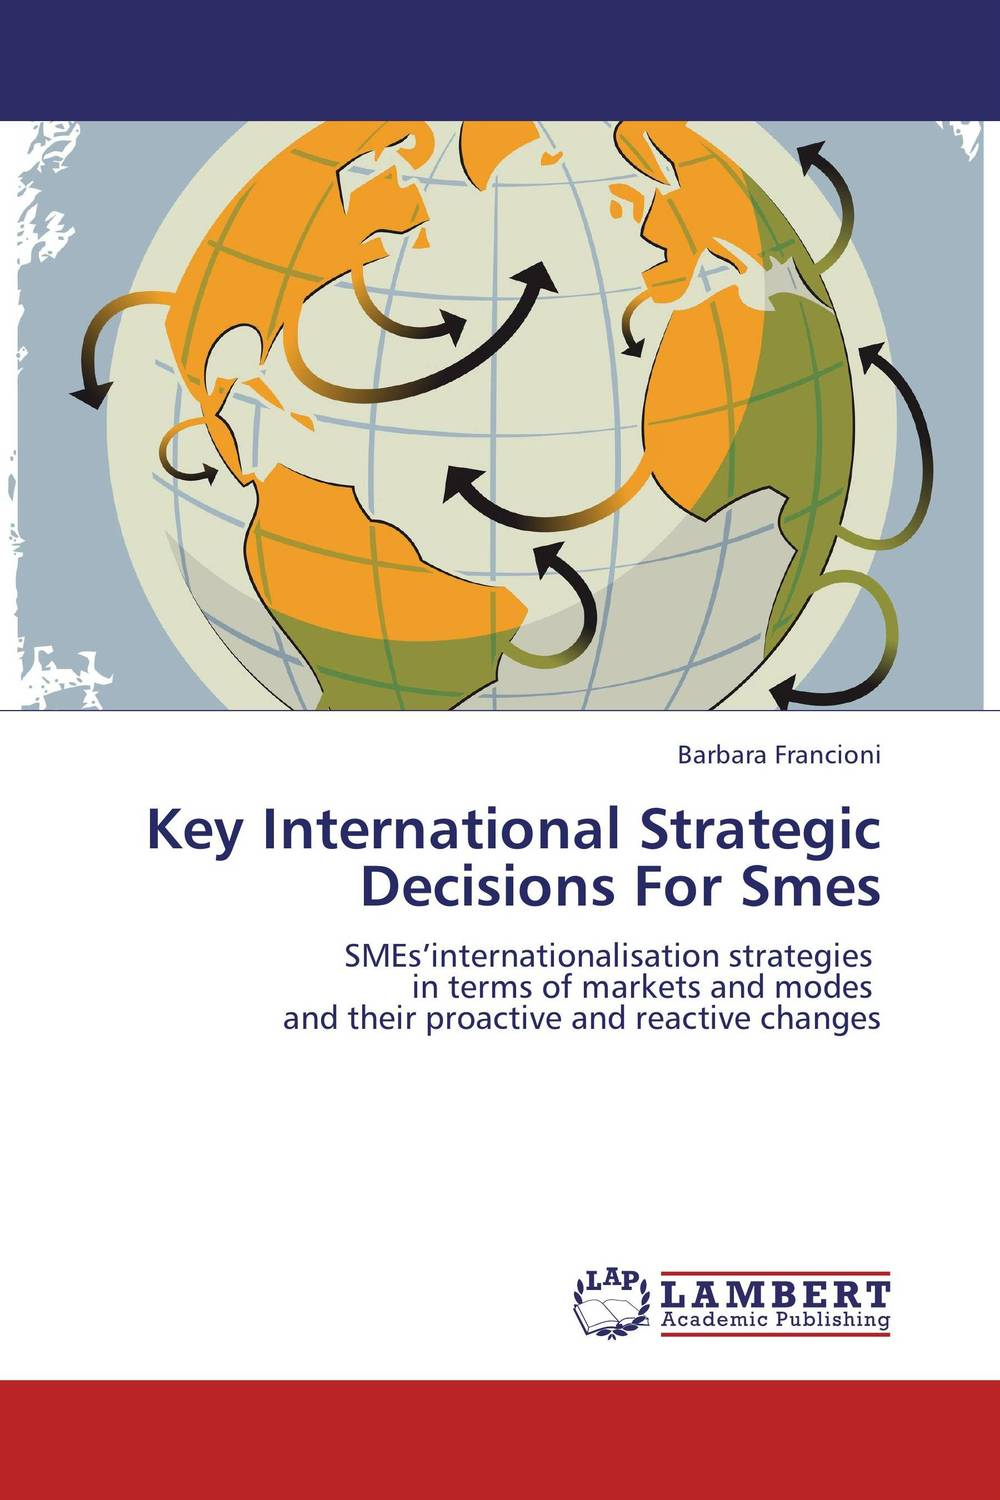 Key International Strategic Decisions For Smes